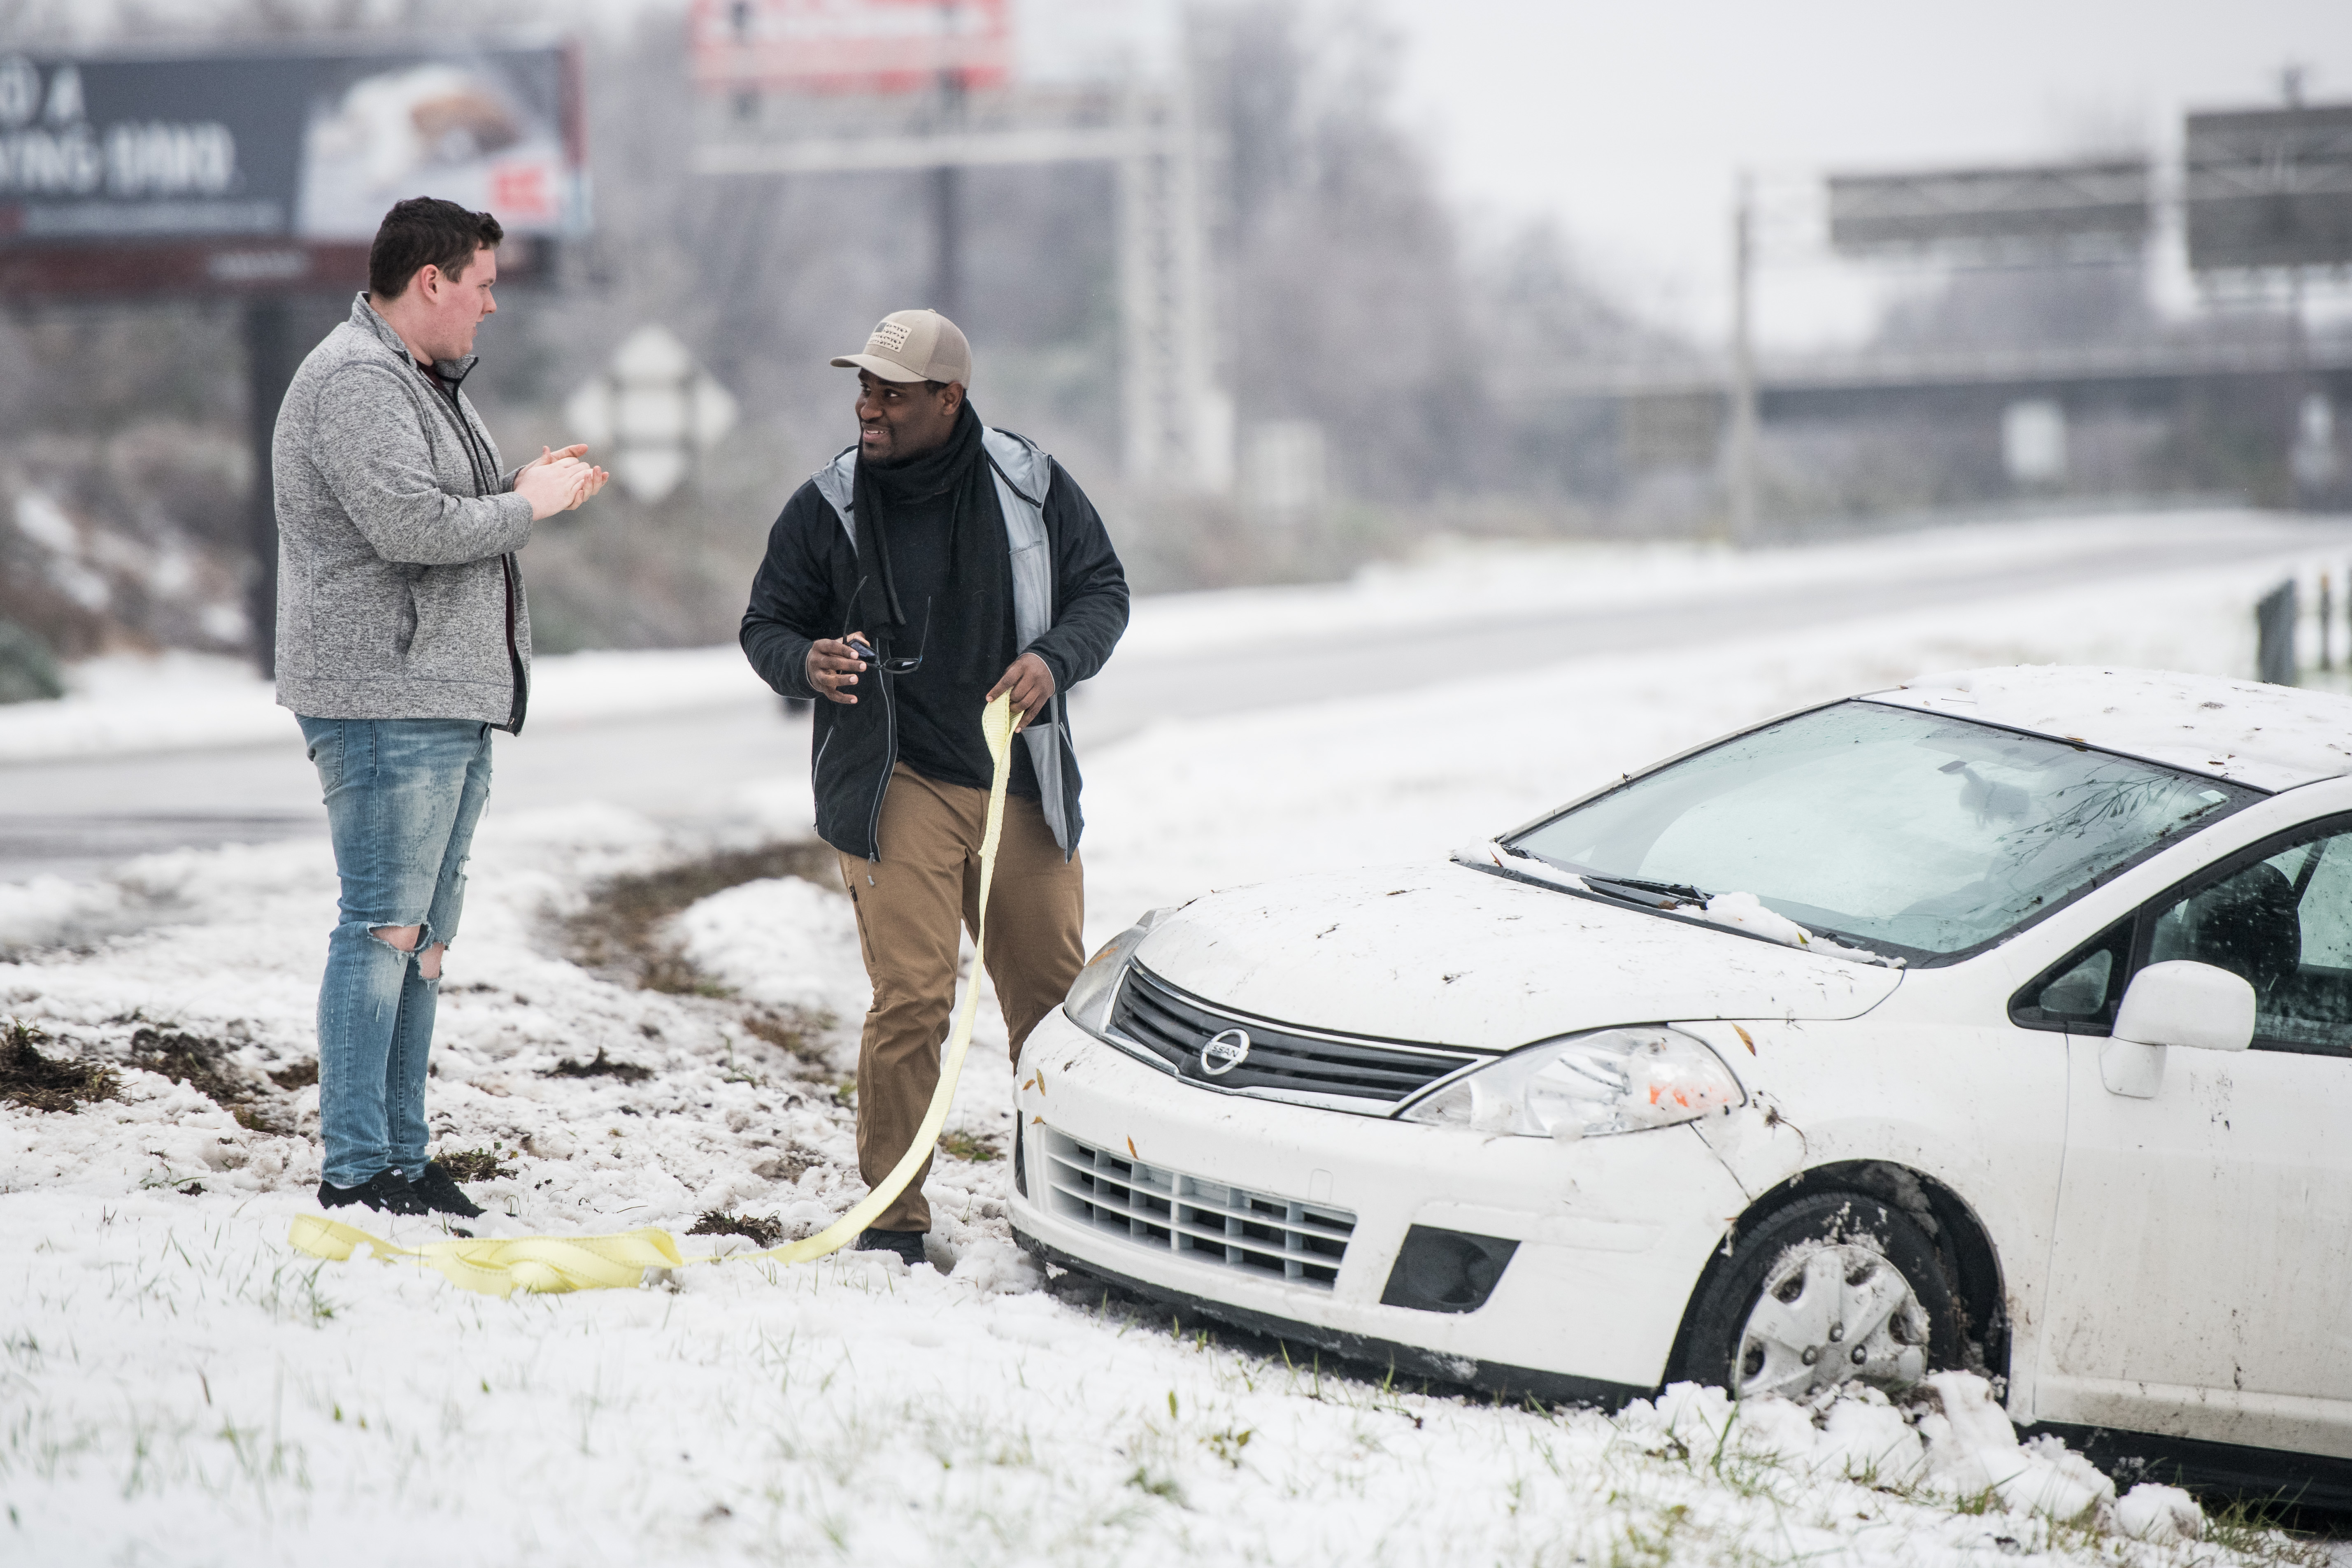 Two men prepare to pull a vehicle out of the snow after a motorist slid off the road on December 9, 2018 in Charlotte, North Carolina. Nearly 250,000 energy customers are without power because of the winter storm. (Photo by Sean Rayford/Getty Images)